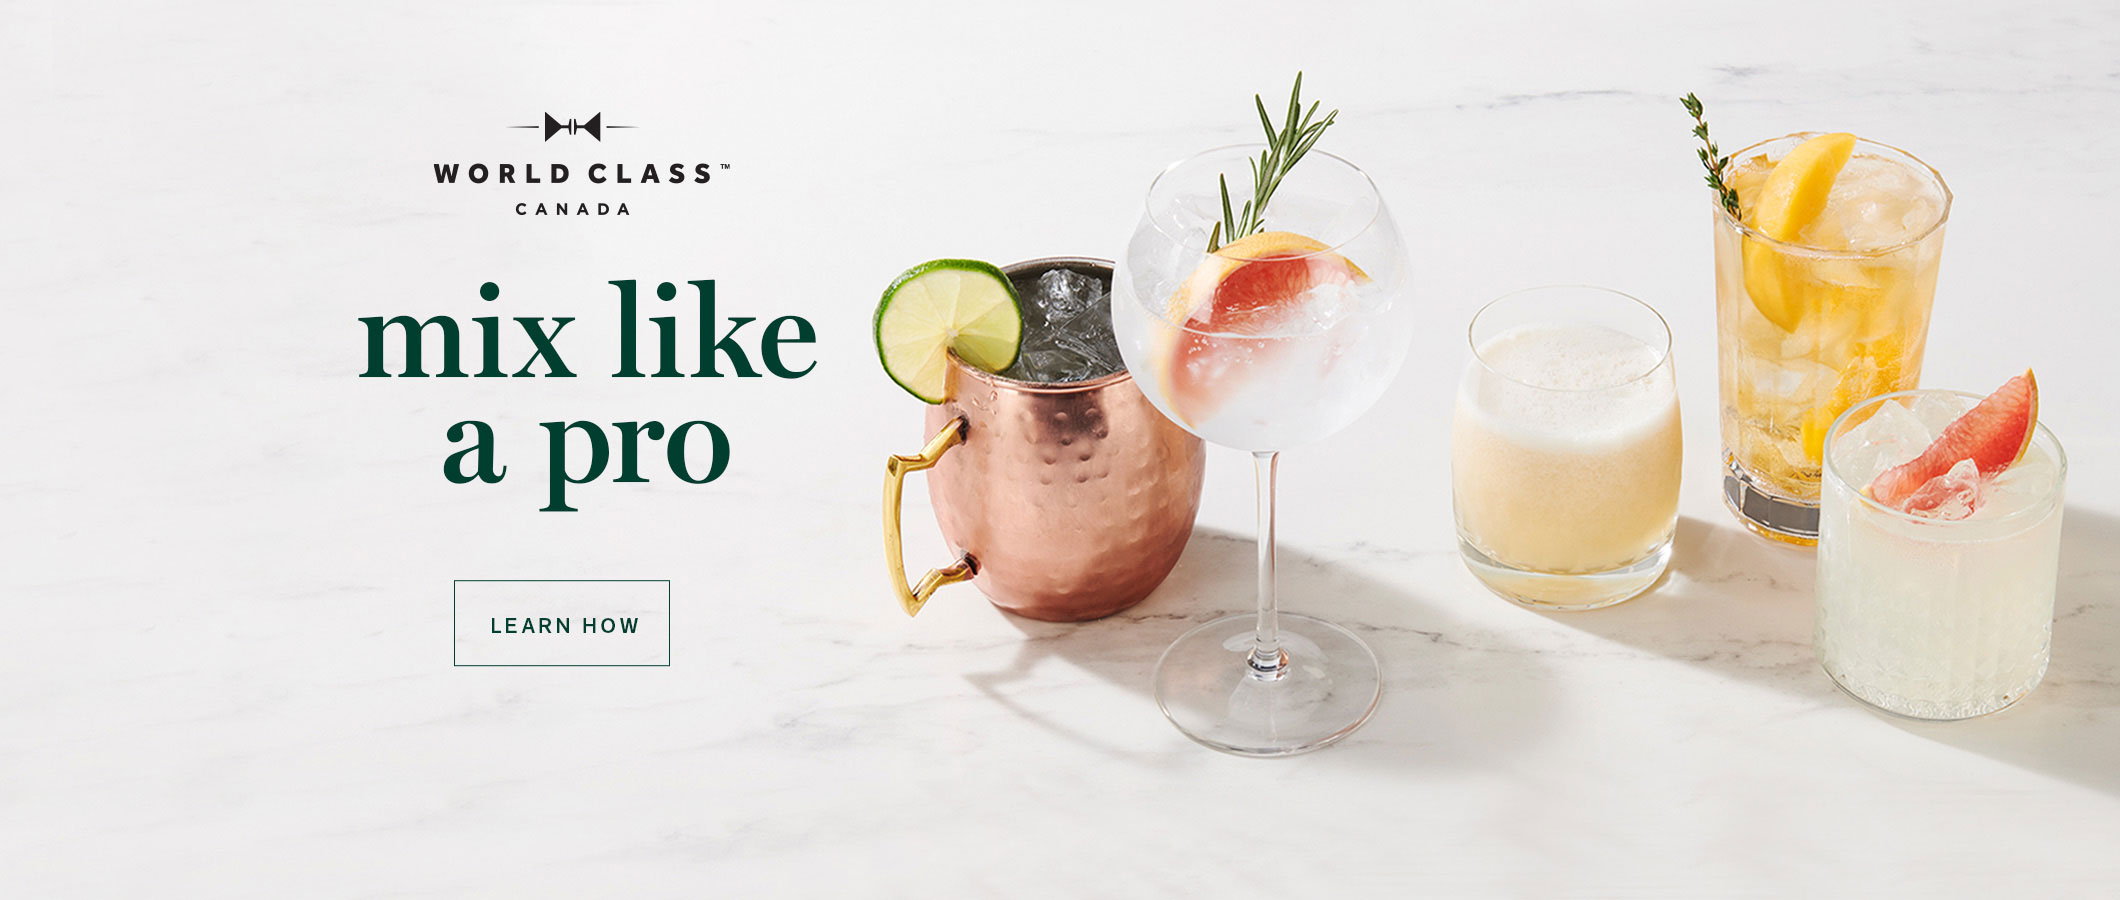 World Class Cocktails Mix Like a Pro!  LEARN HOW